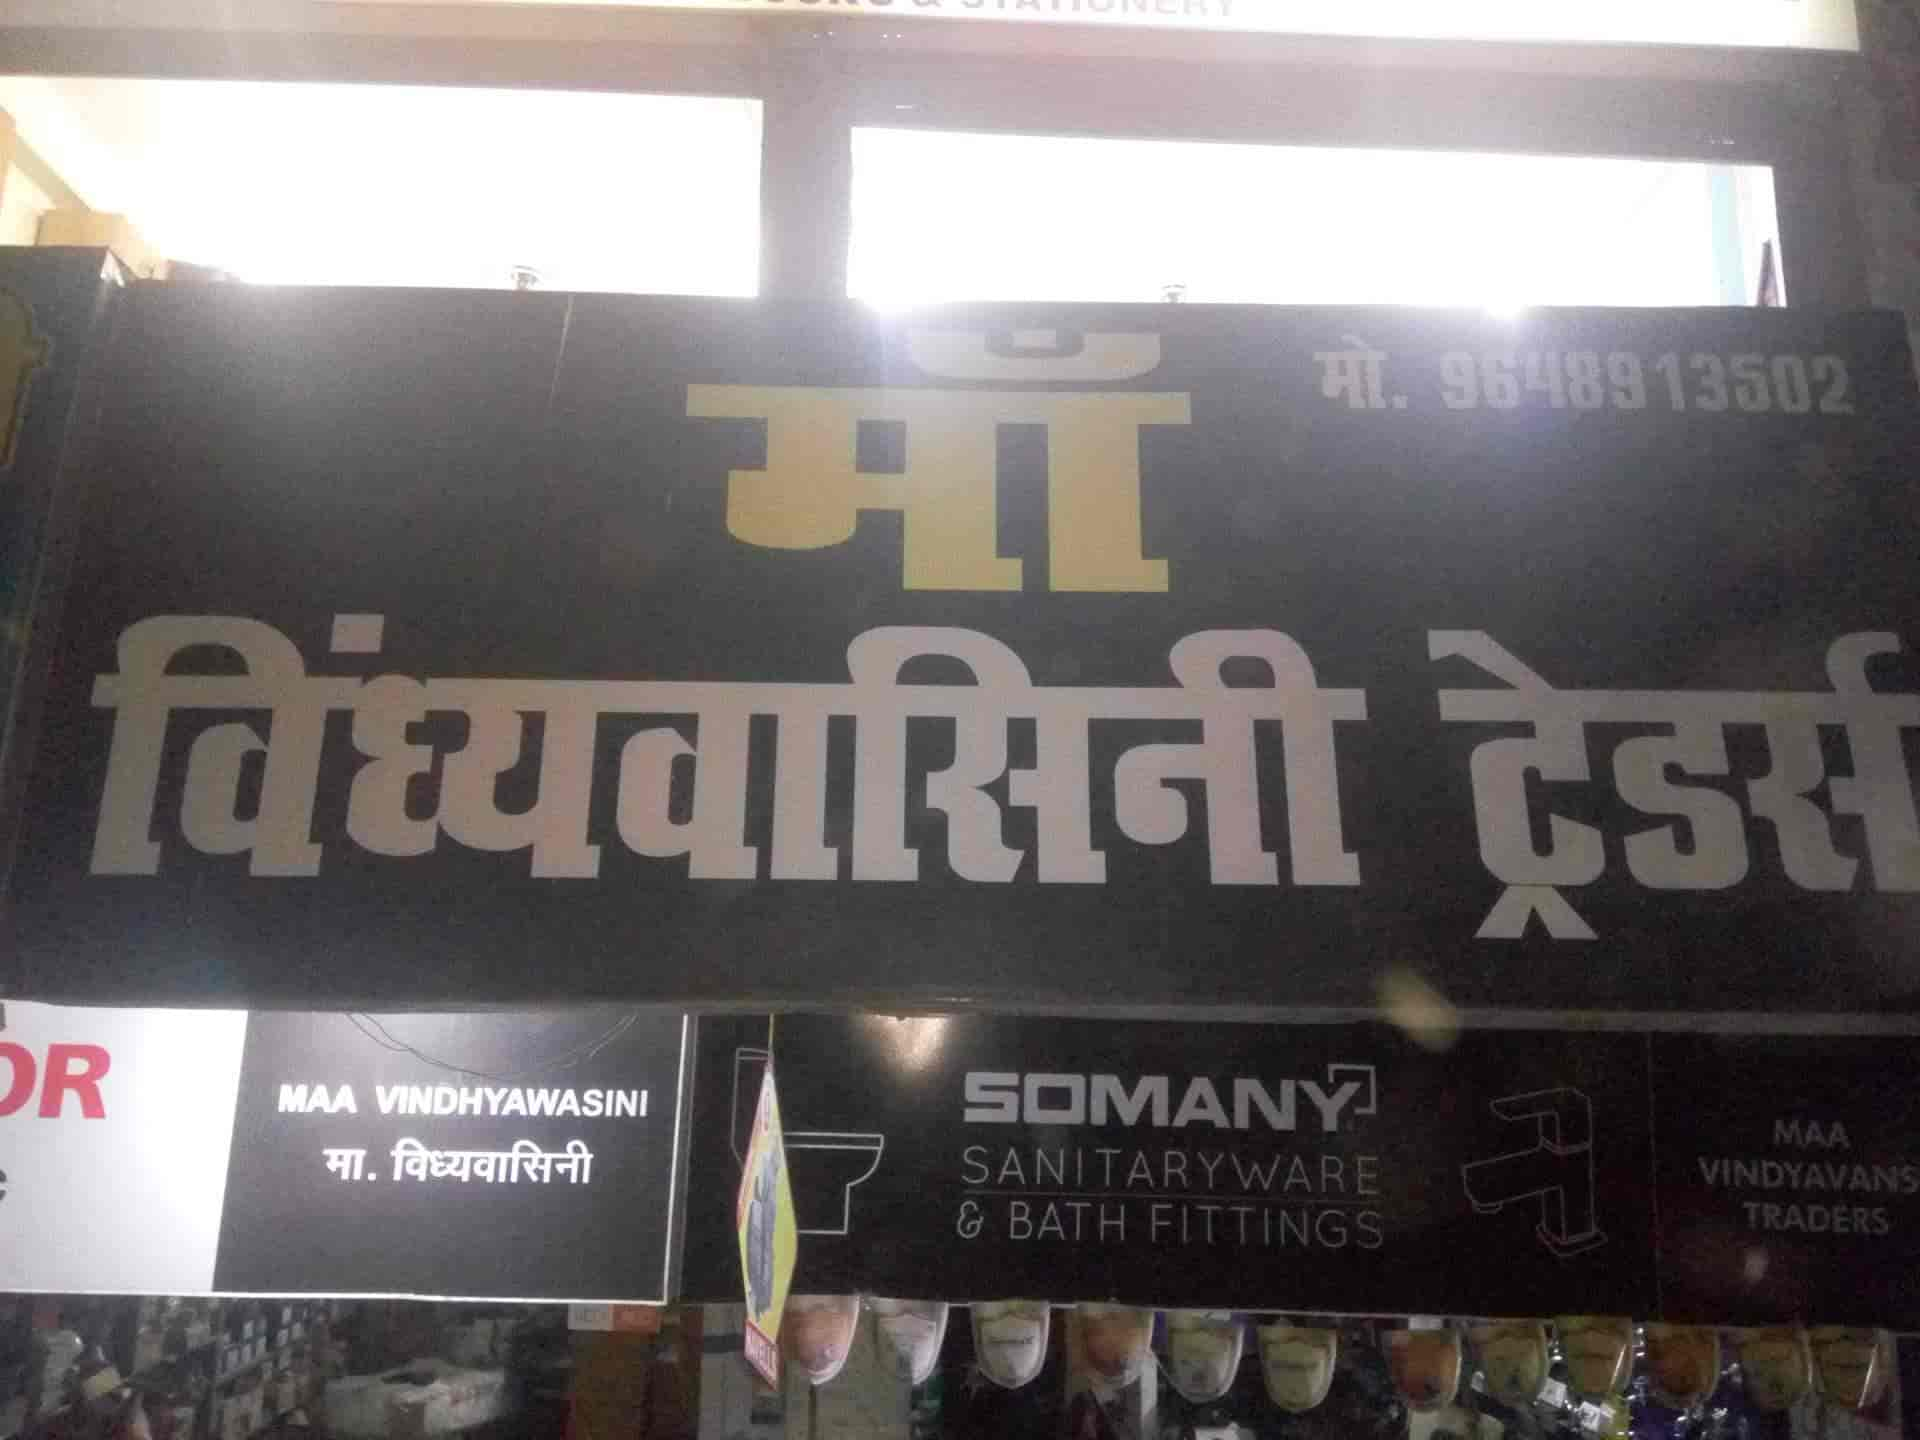 Maa Vindhyavasini Traders, Chinhat - Hardware Shops in Lucknow